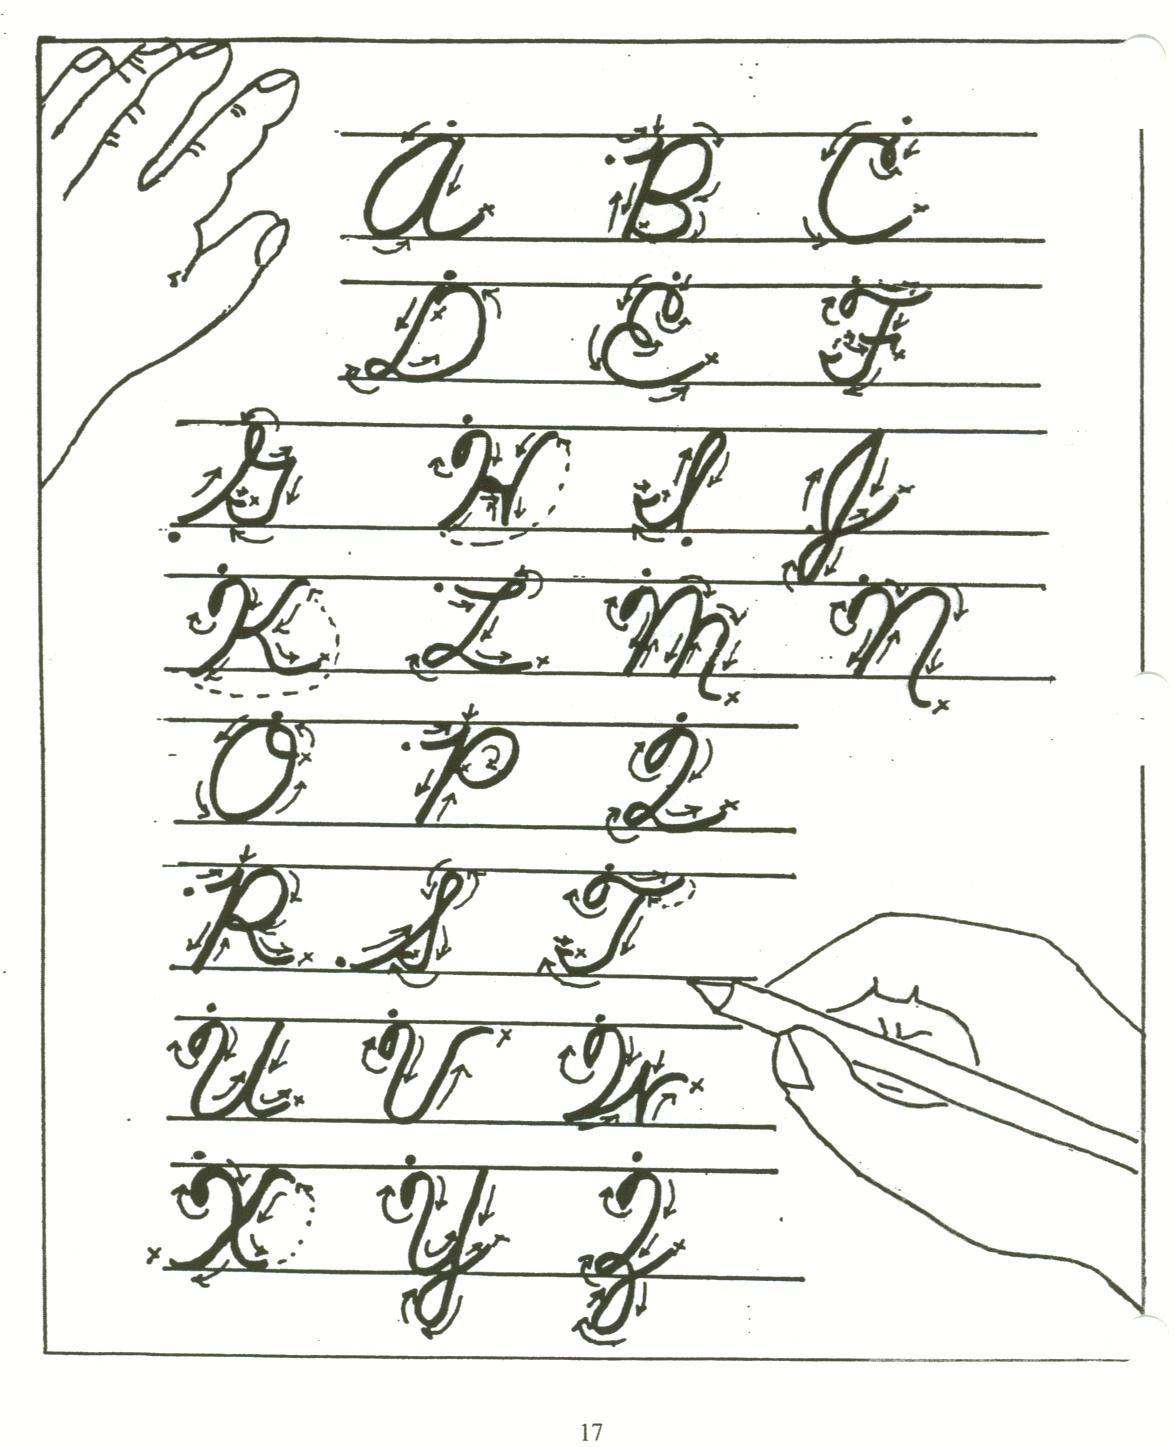 worksheet Practice Cursive Writing cursive capital letter a z practice worksheet download free at the denver montclair international school some students learn to write in as early